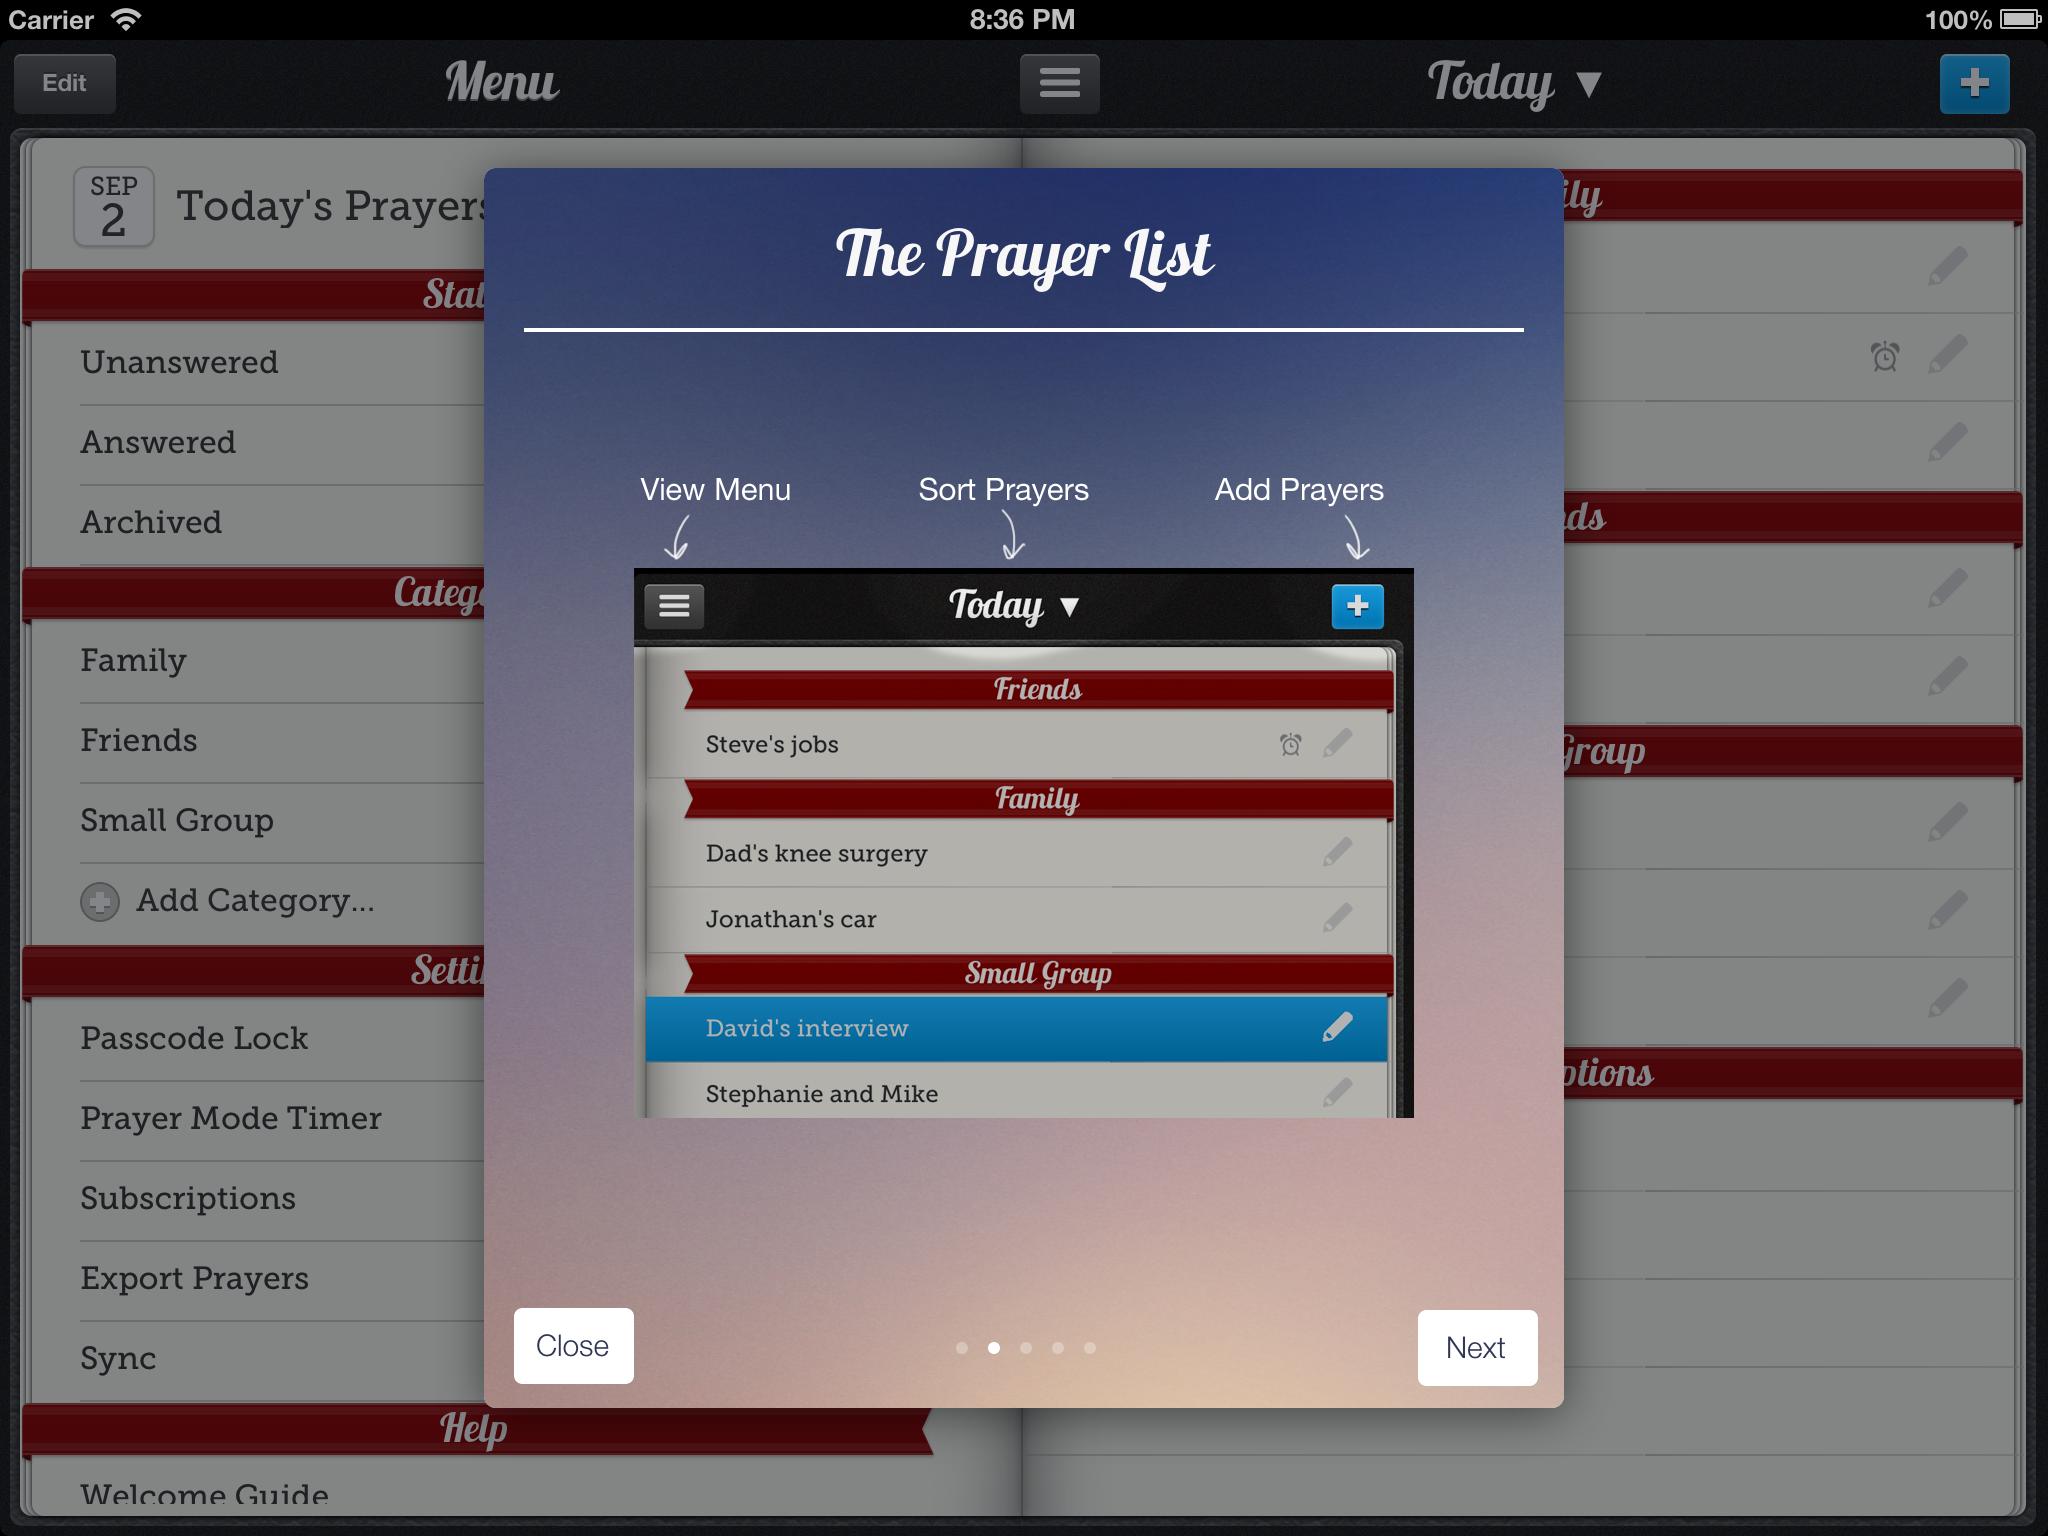 Prayer Notebook menu with categories, settings, and feedback